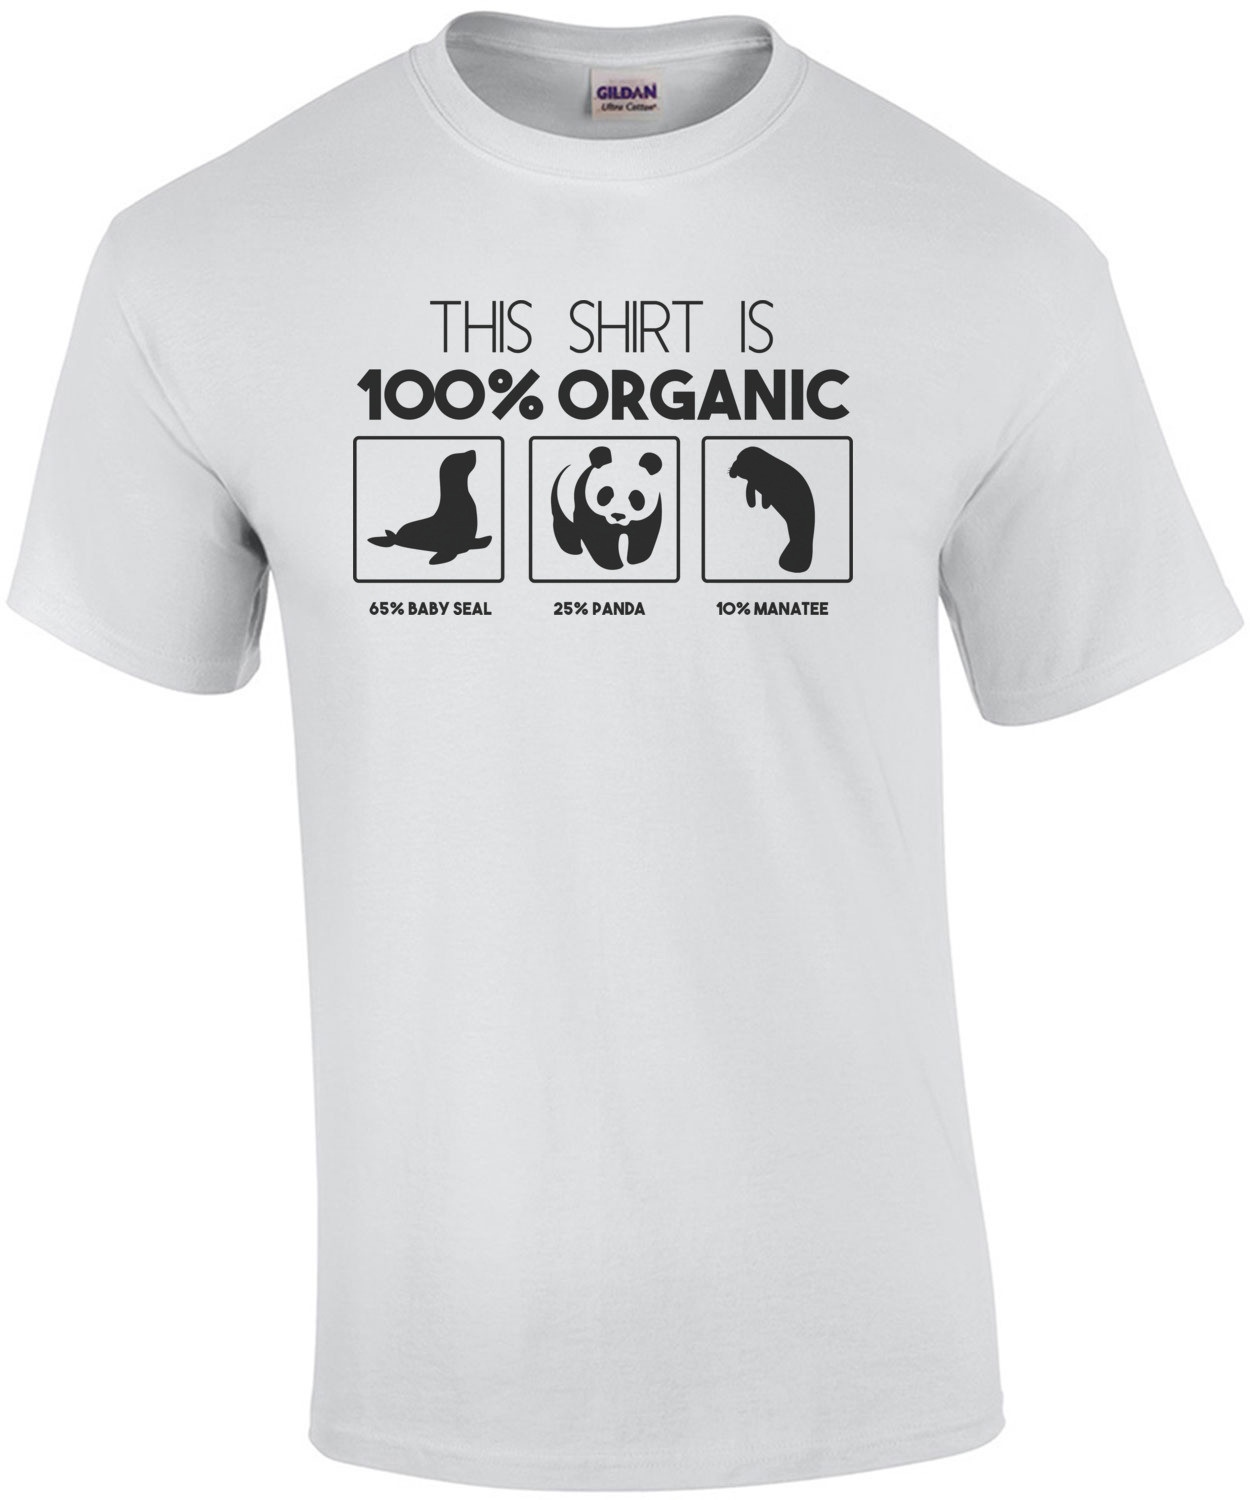 This shirt is 100% organic 65% baby seal 25% panda 10% manatee Organic T-Shirt